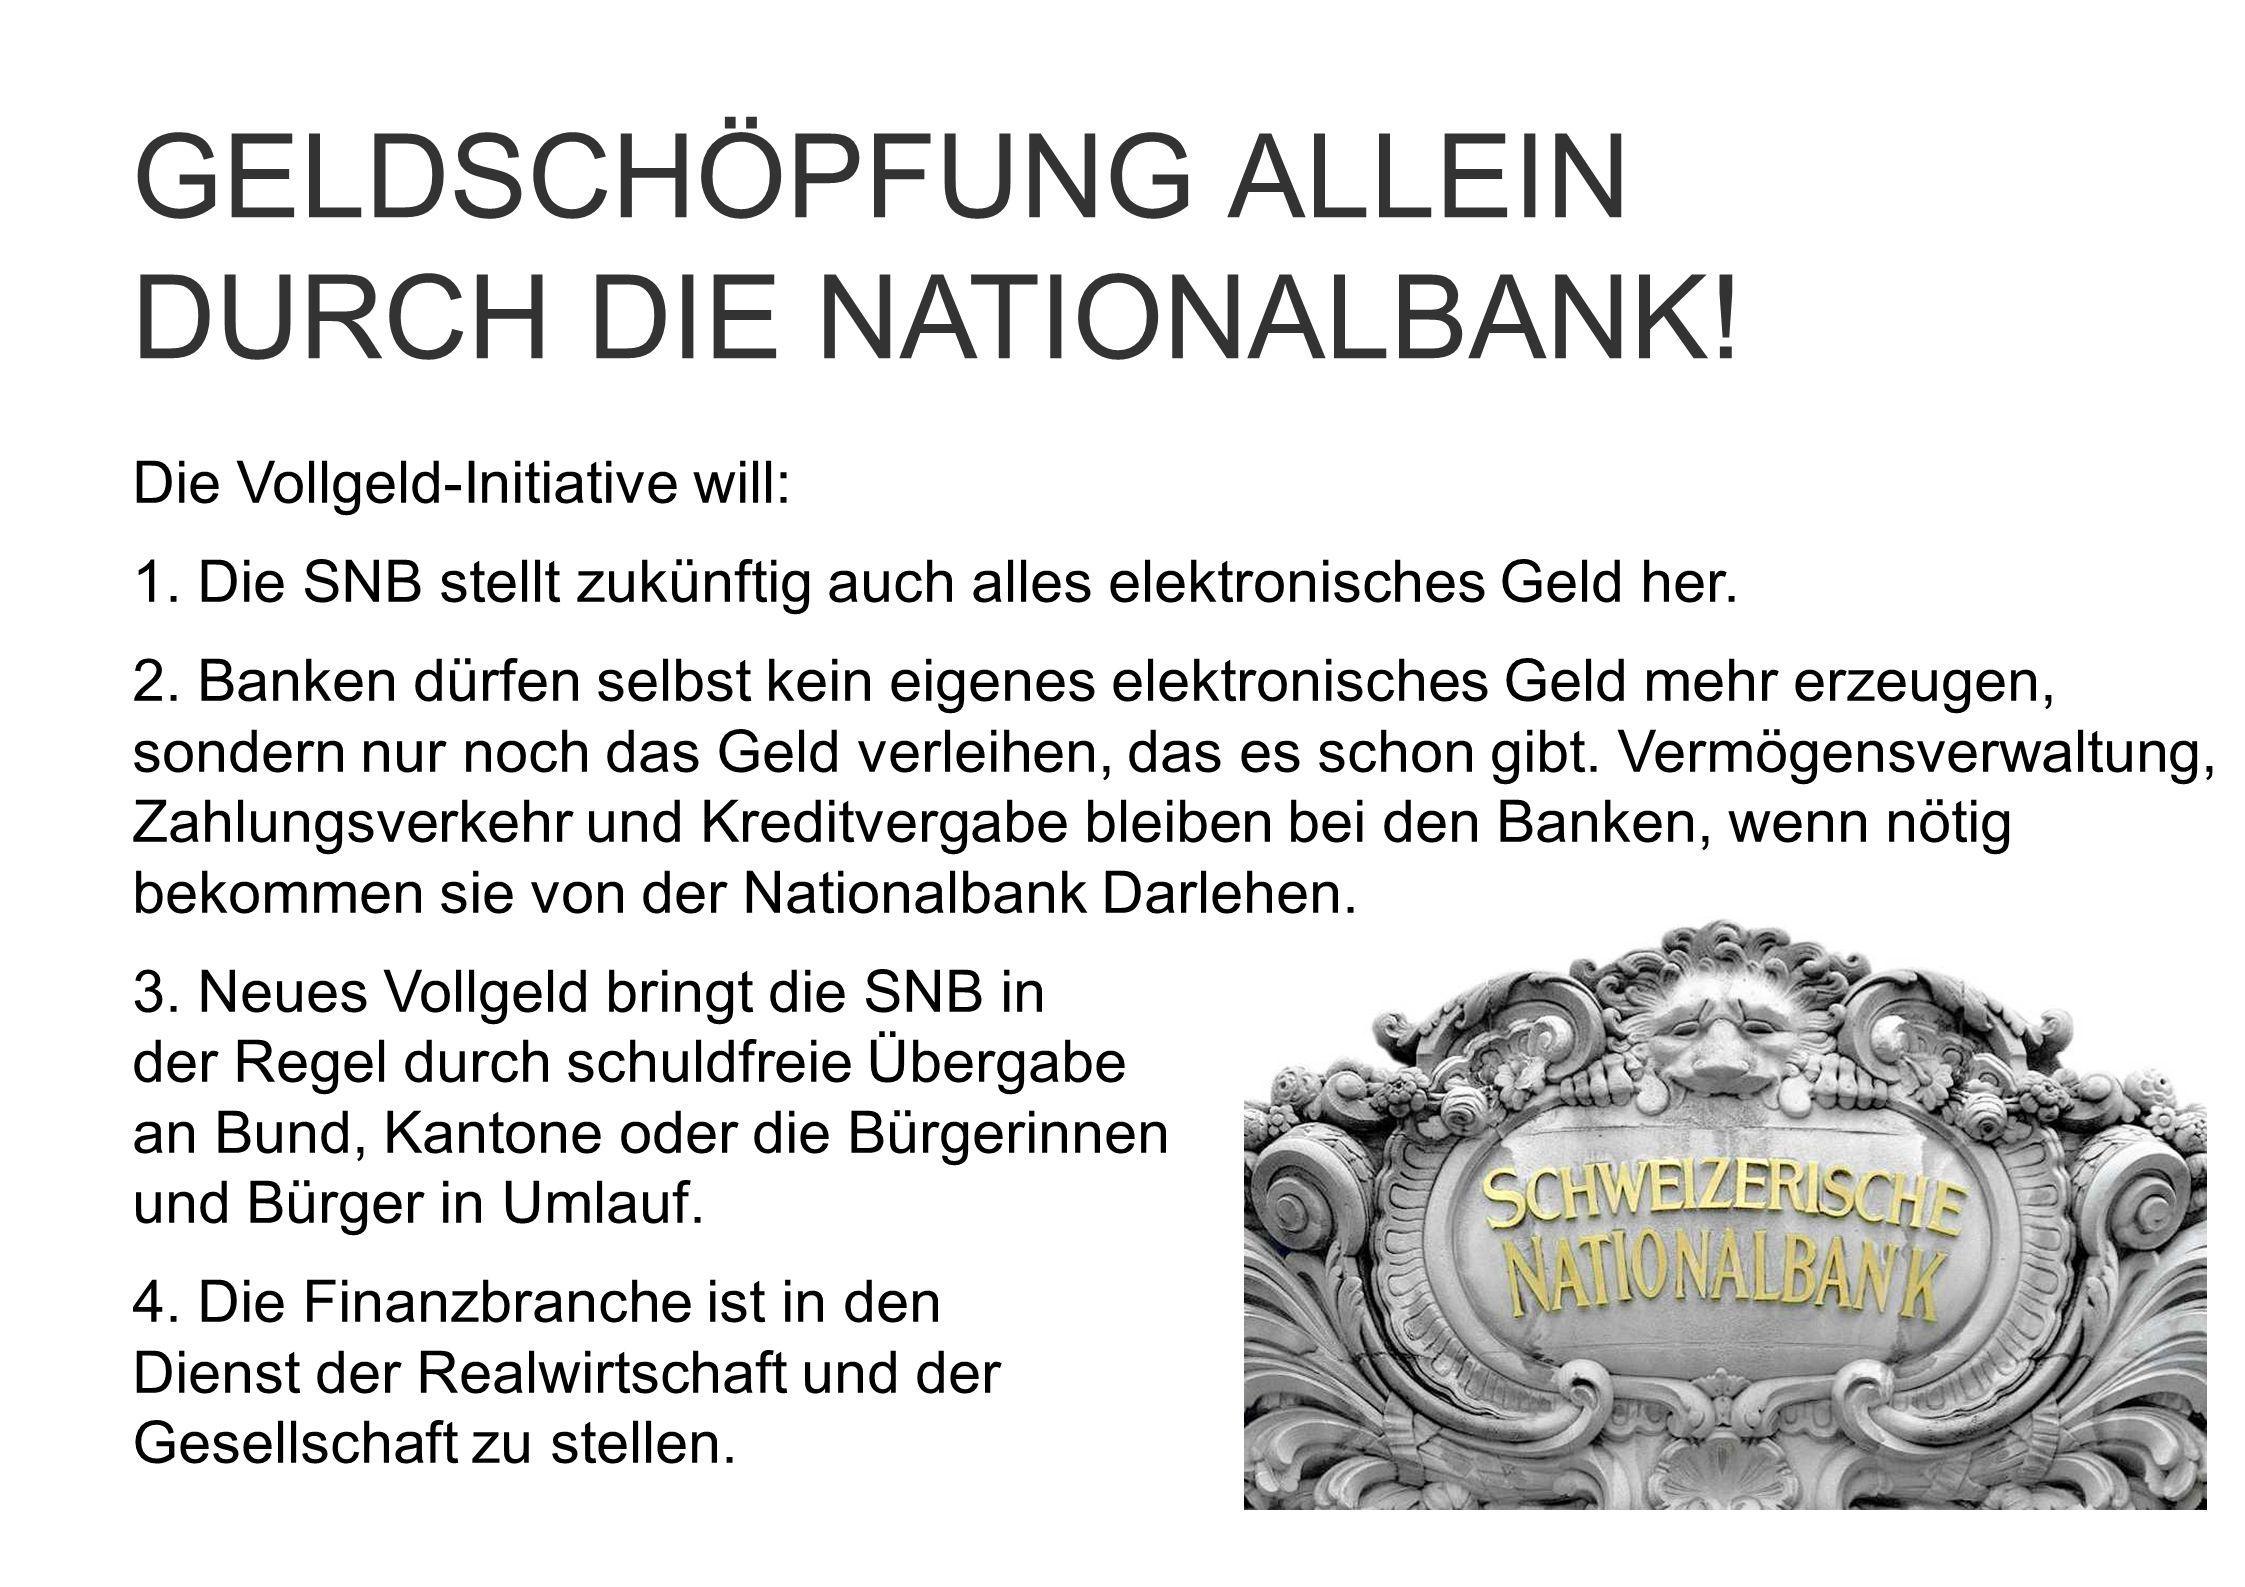 DURCH DIE NATIONALBANK!